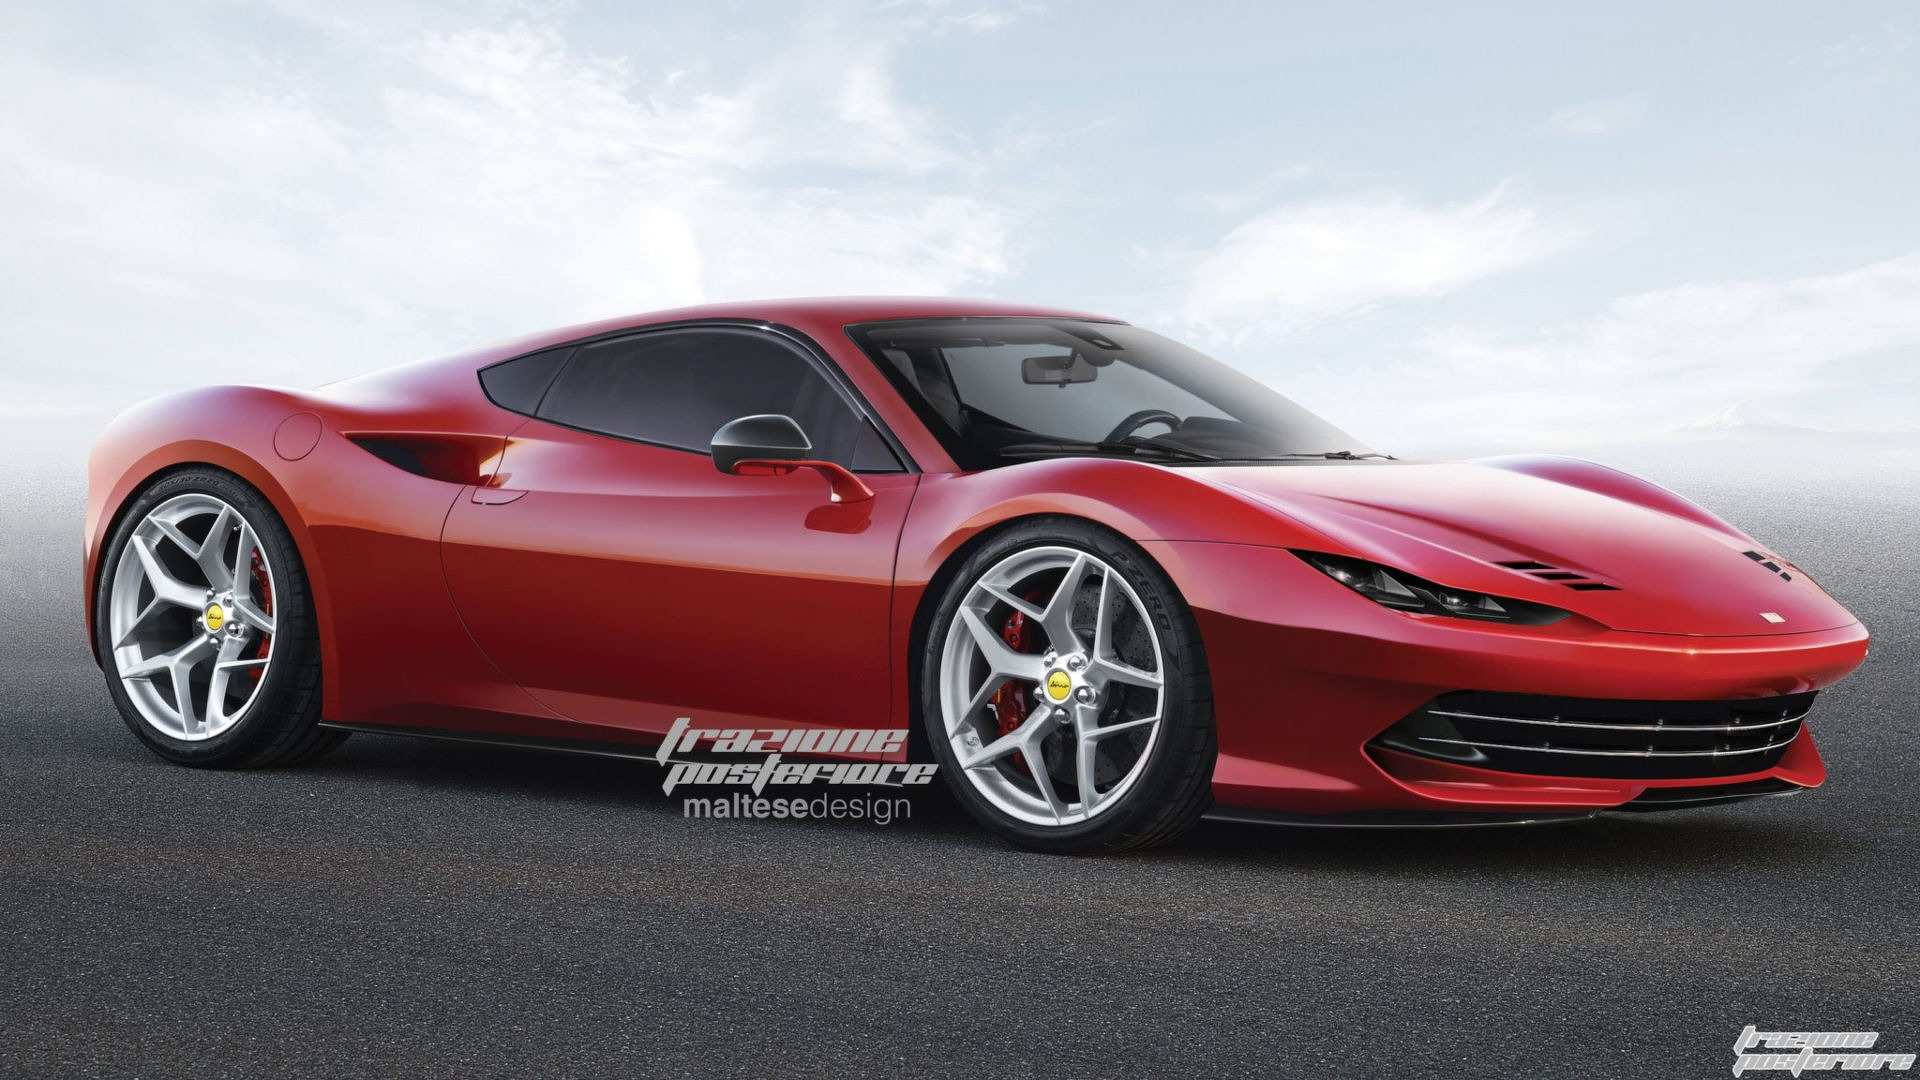 50 Concept of Dino Ferrari 2019 Engine Exterior with Dino Ferrari 2019 Engine